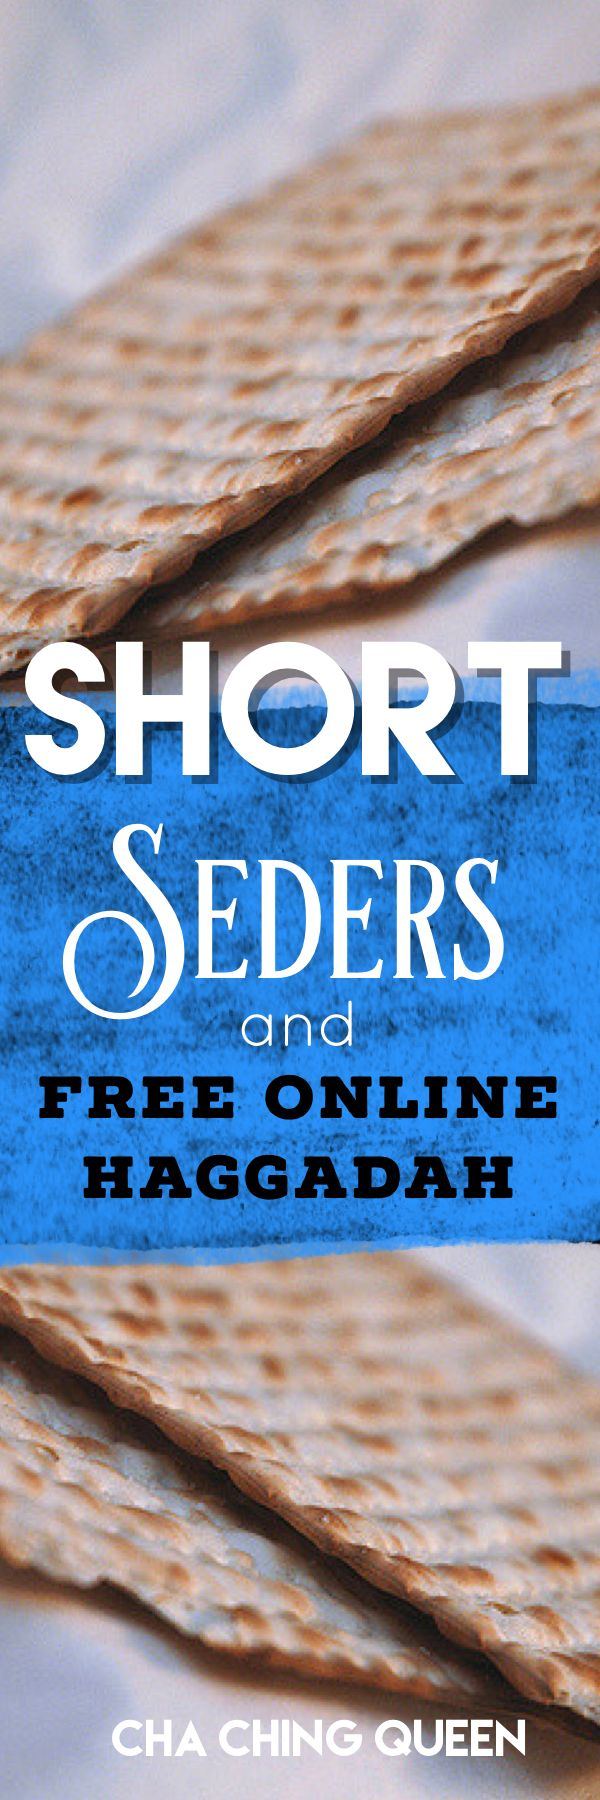 picture relating to Printable Haggadahs titled Small Seder Listing - No cost Printable Pover Haggadah On-line